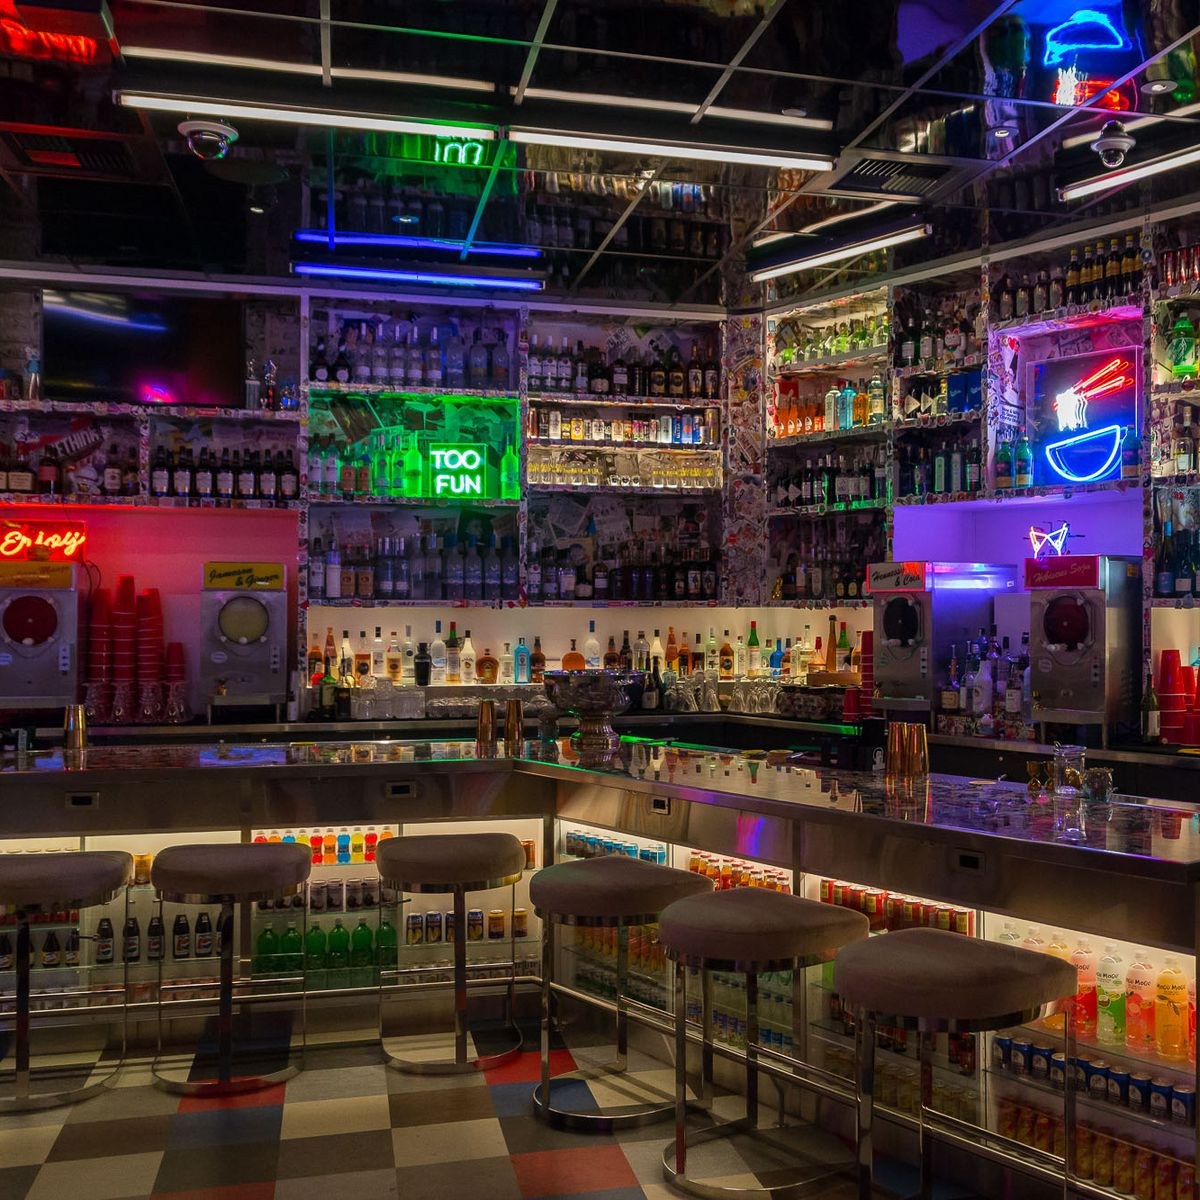 Bar with bar stools and tons of bright neon signs